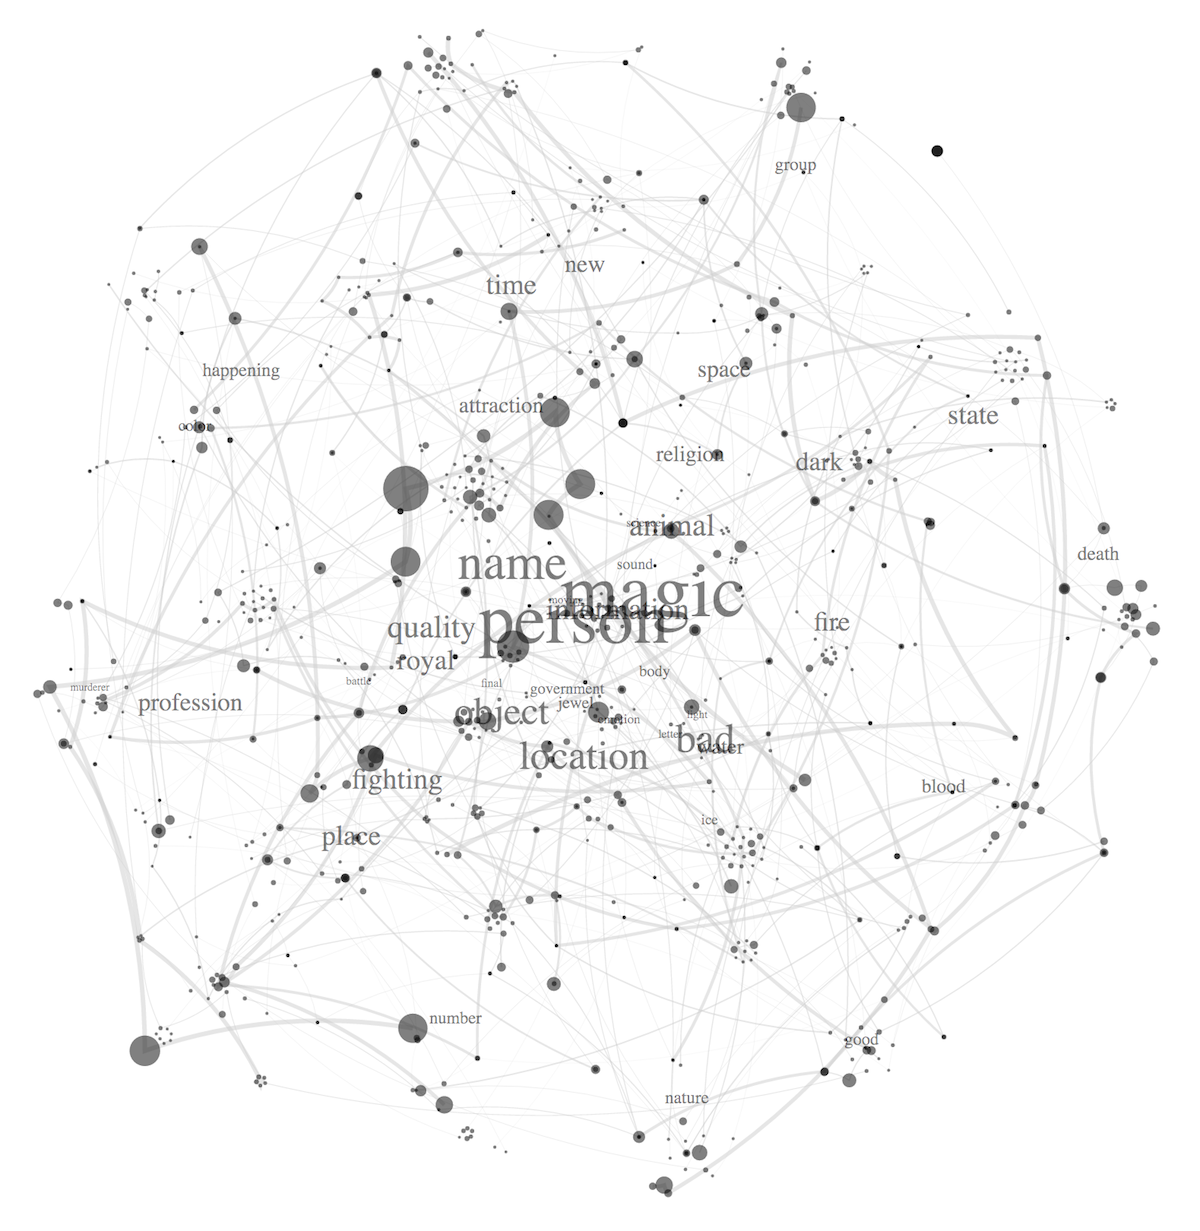 Books plotted and the most common terms